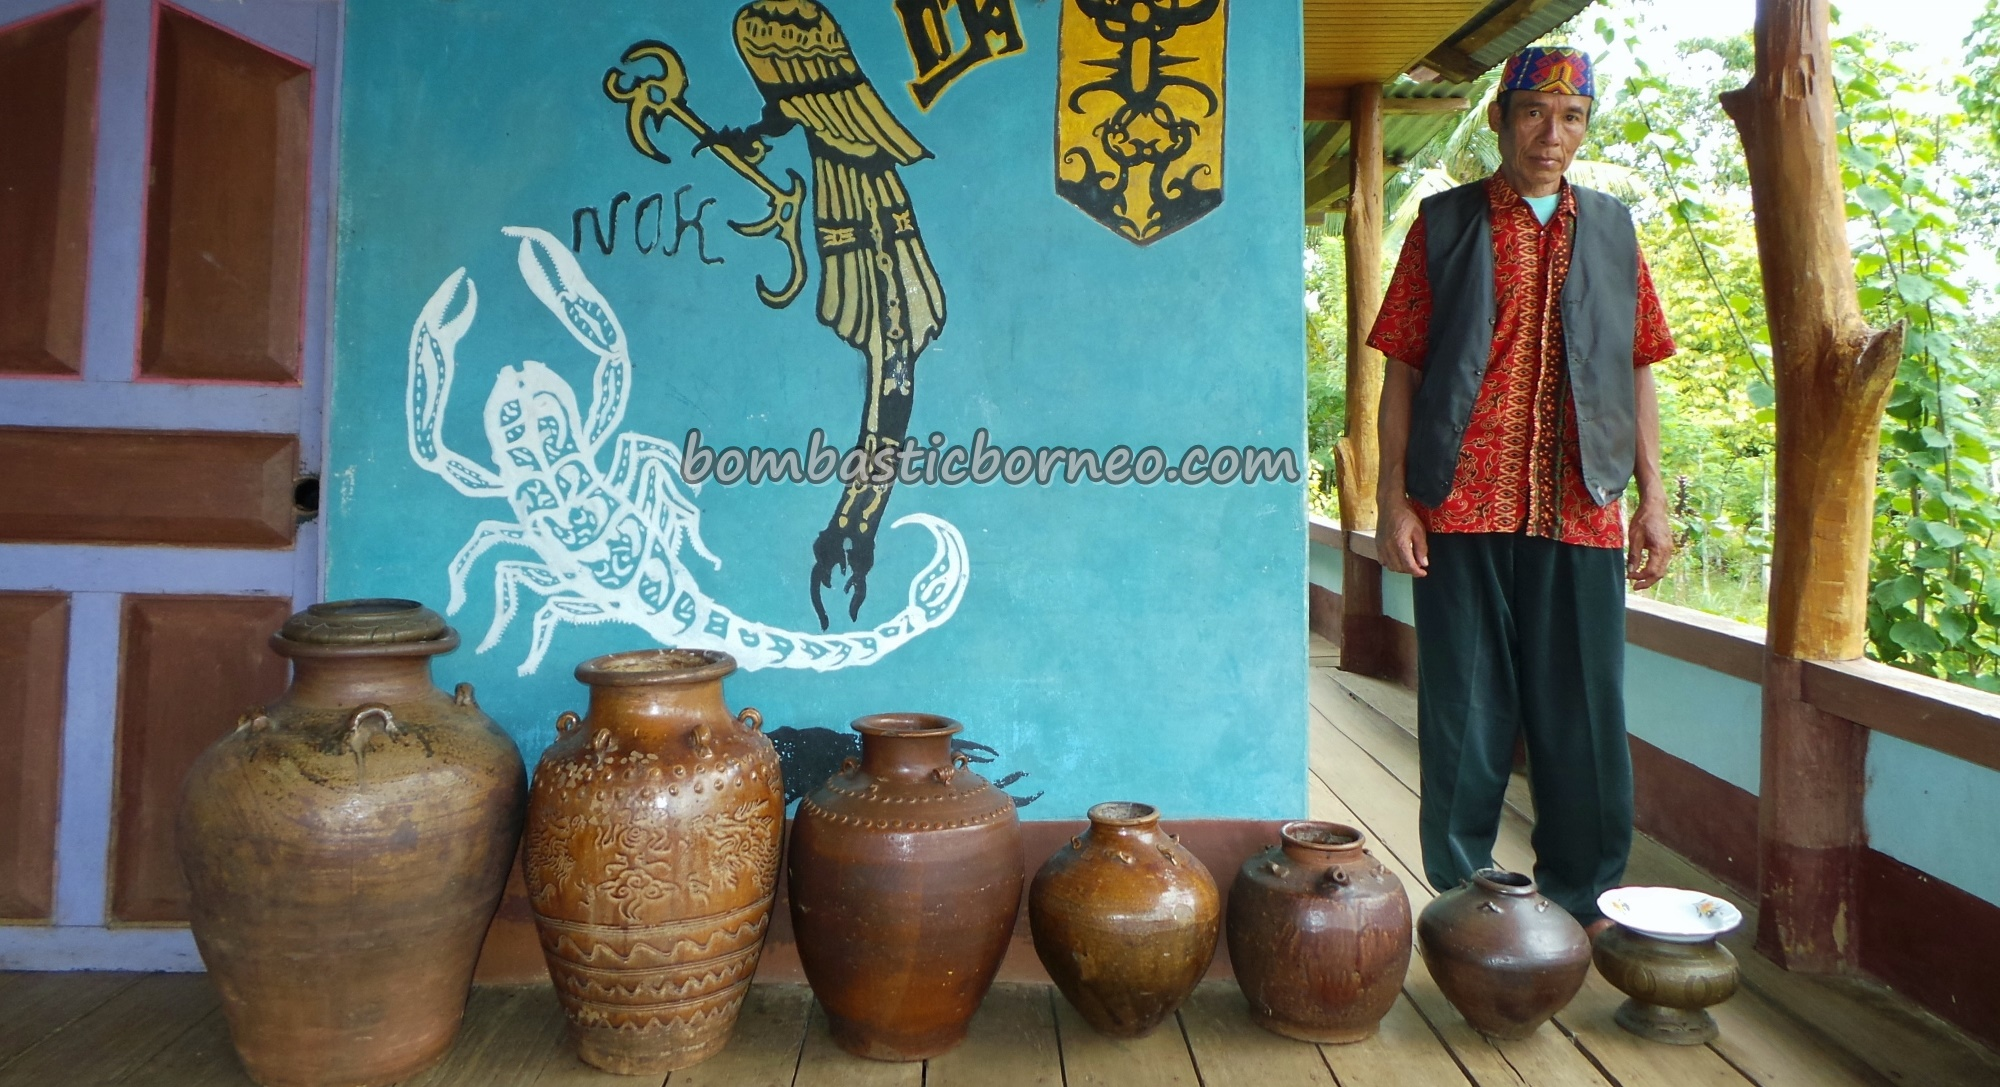 authentic, Bakati, West Barat, Bengkayang, culture, customary law, Dusun Sahan, Ethnic, hukuman adat, indigenous, Undang, Nyabank'ng, nyobeng, antique jars, Seluas, traditional, tribal, tribe, village,